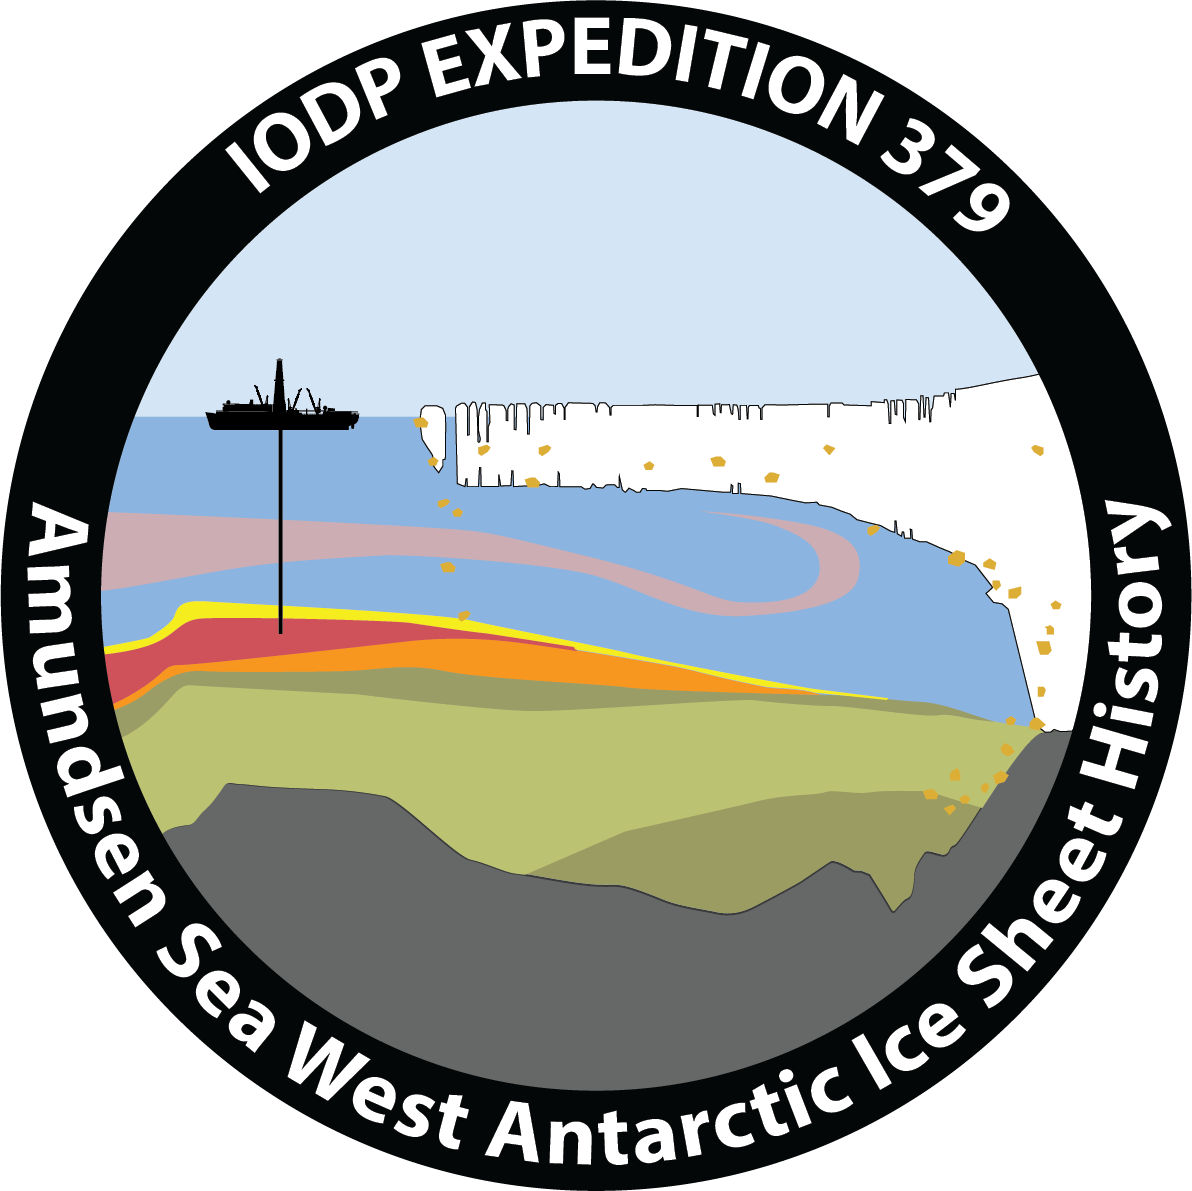 Thumbnail image for expedition